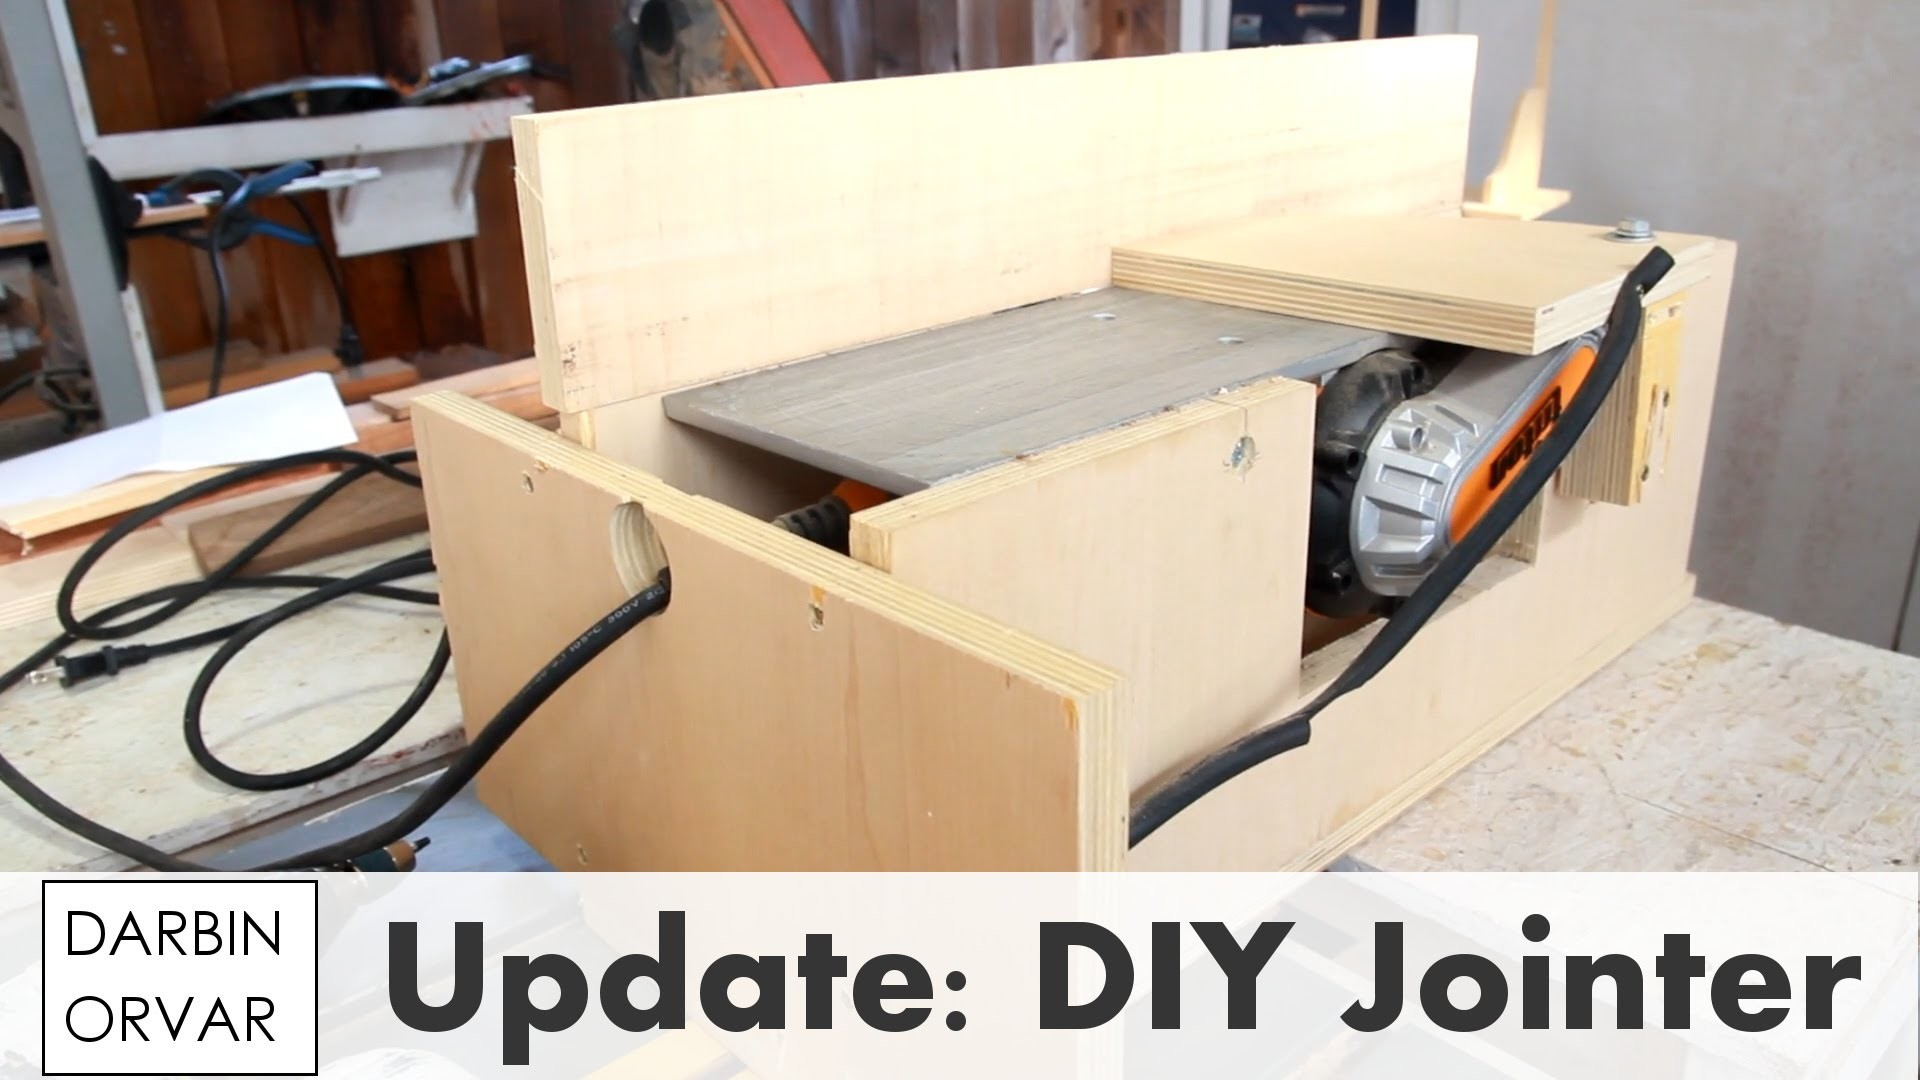 Diy Jointer Shop Update November 2015 My Crafts And Diy